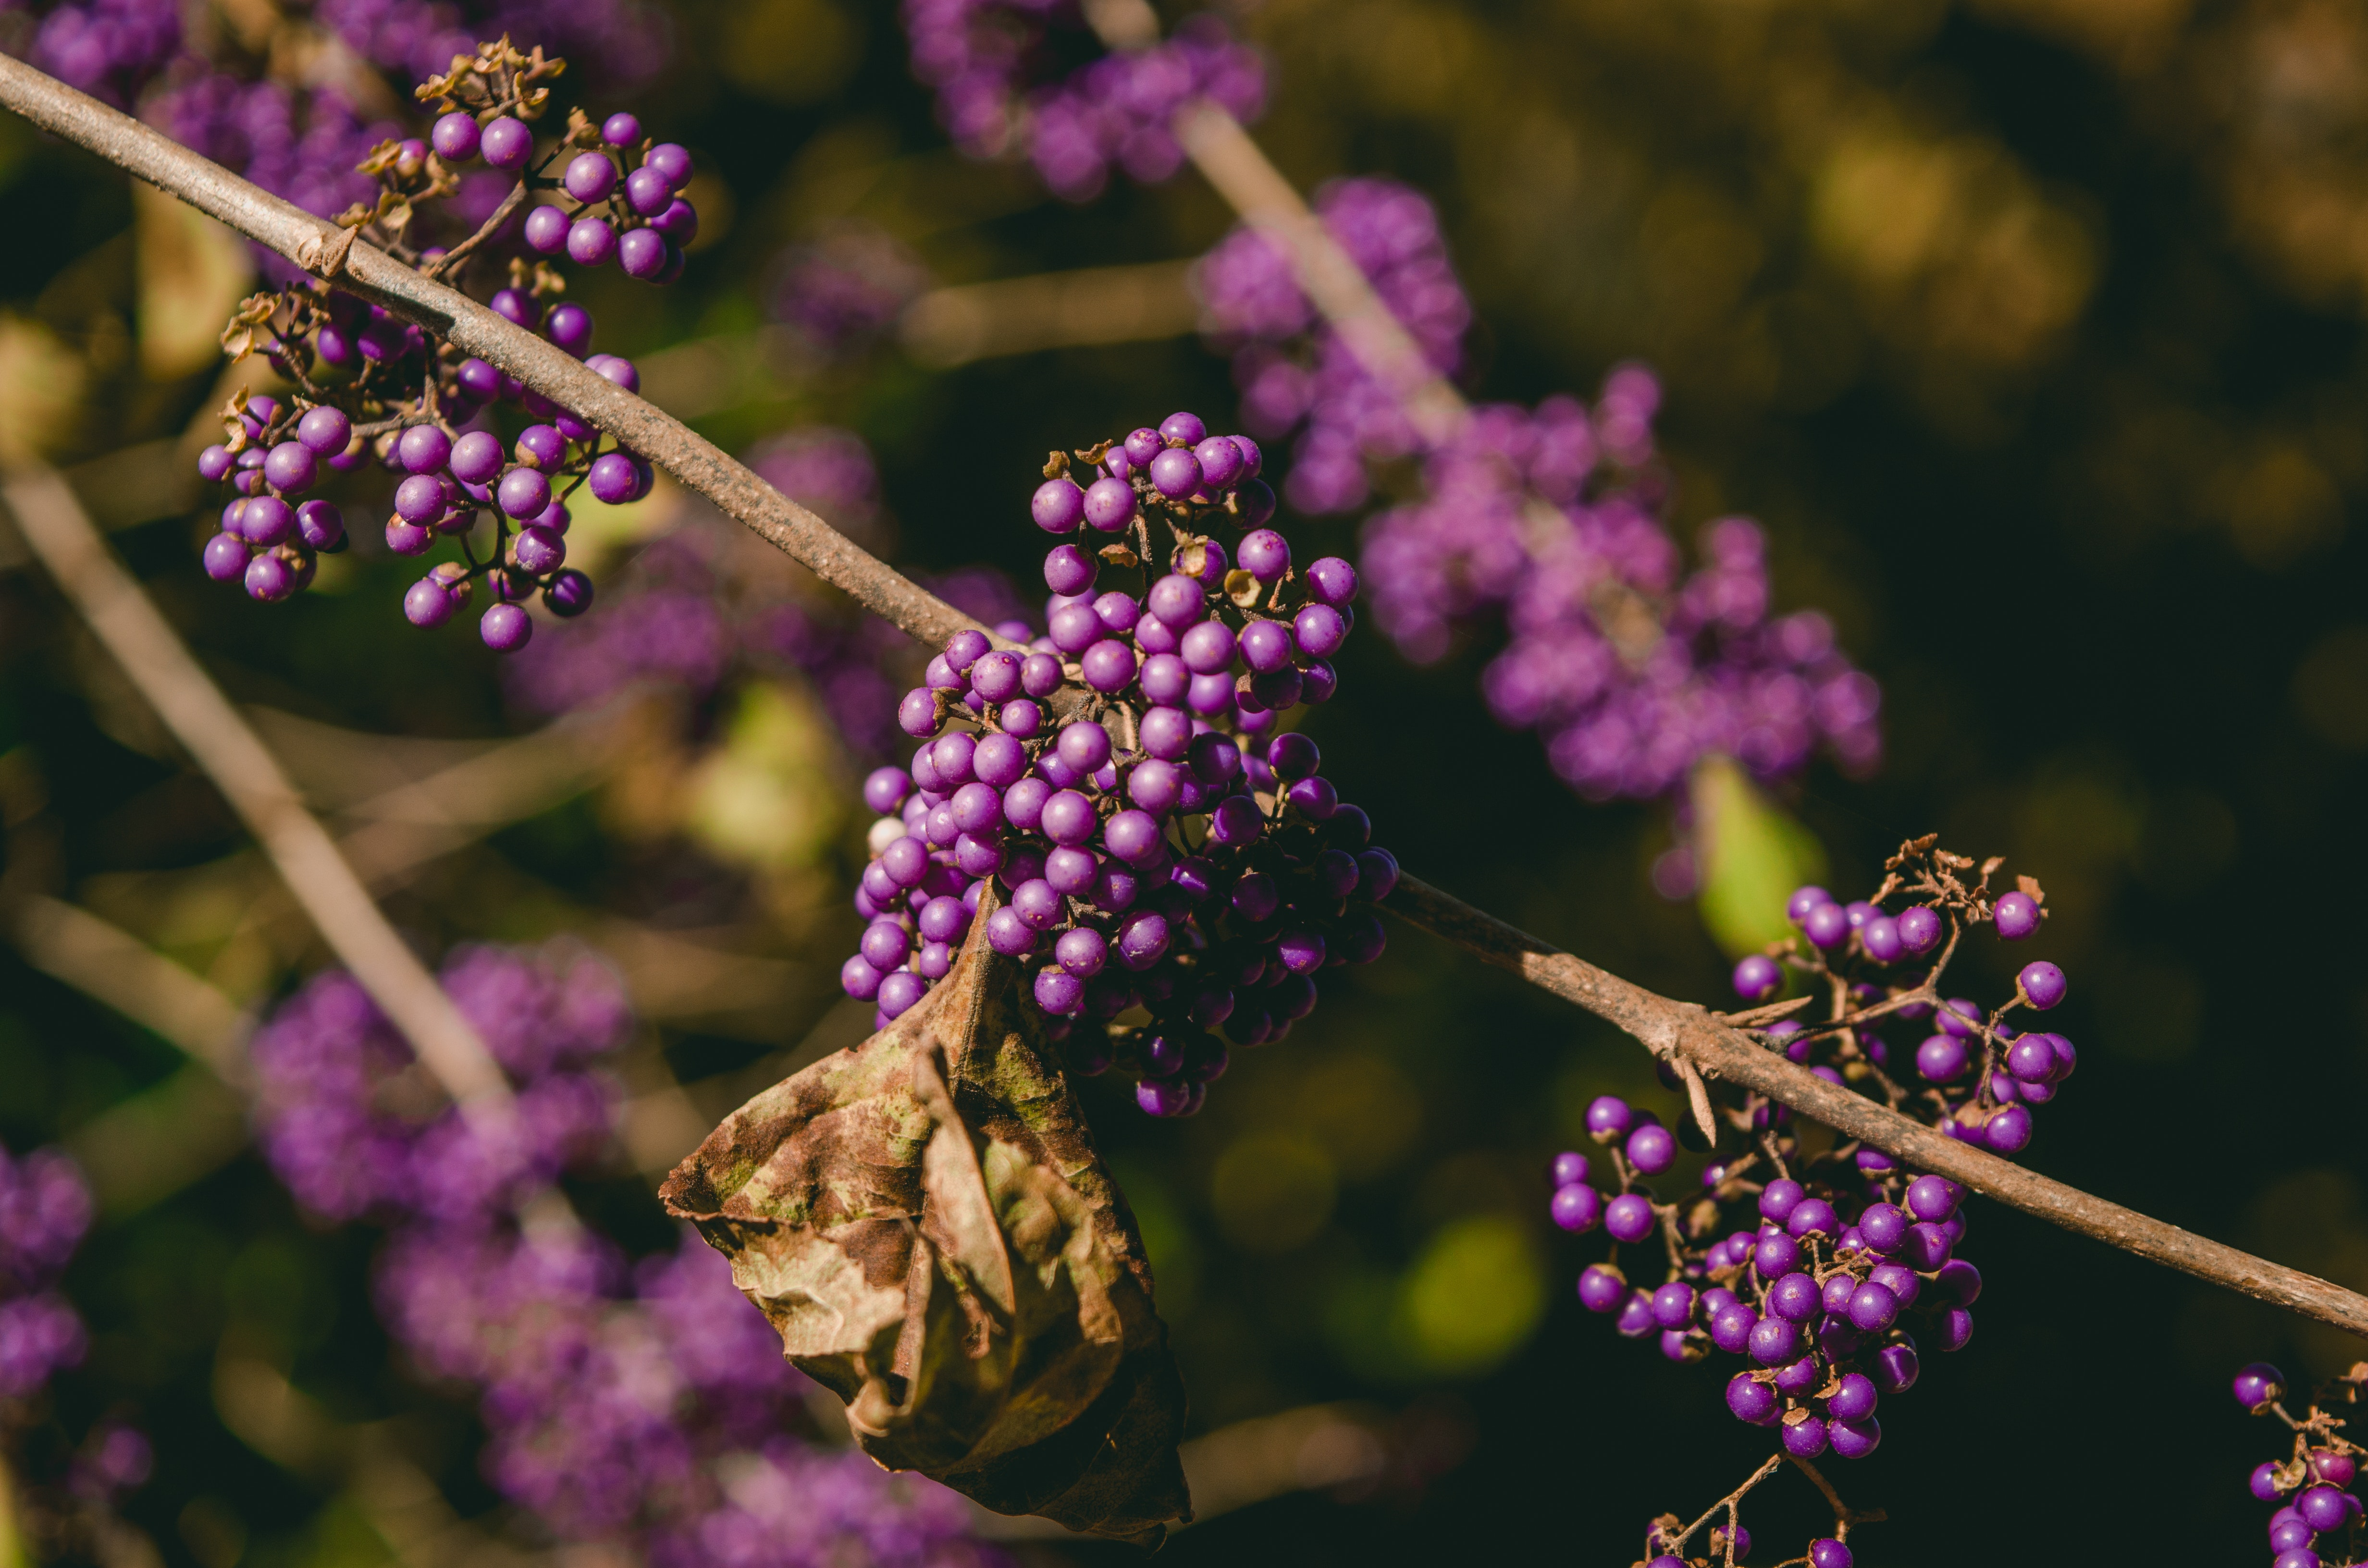 Close Up View of Purple and Brown Flower, Berries, Blur, Blurred background, Branches, HQ Photo